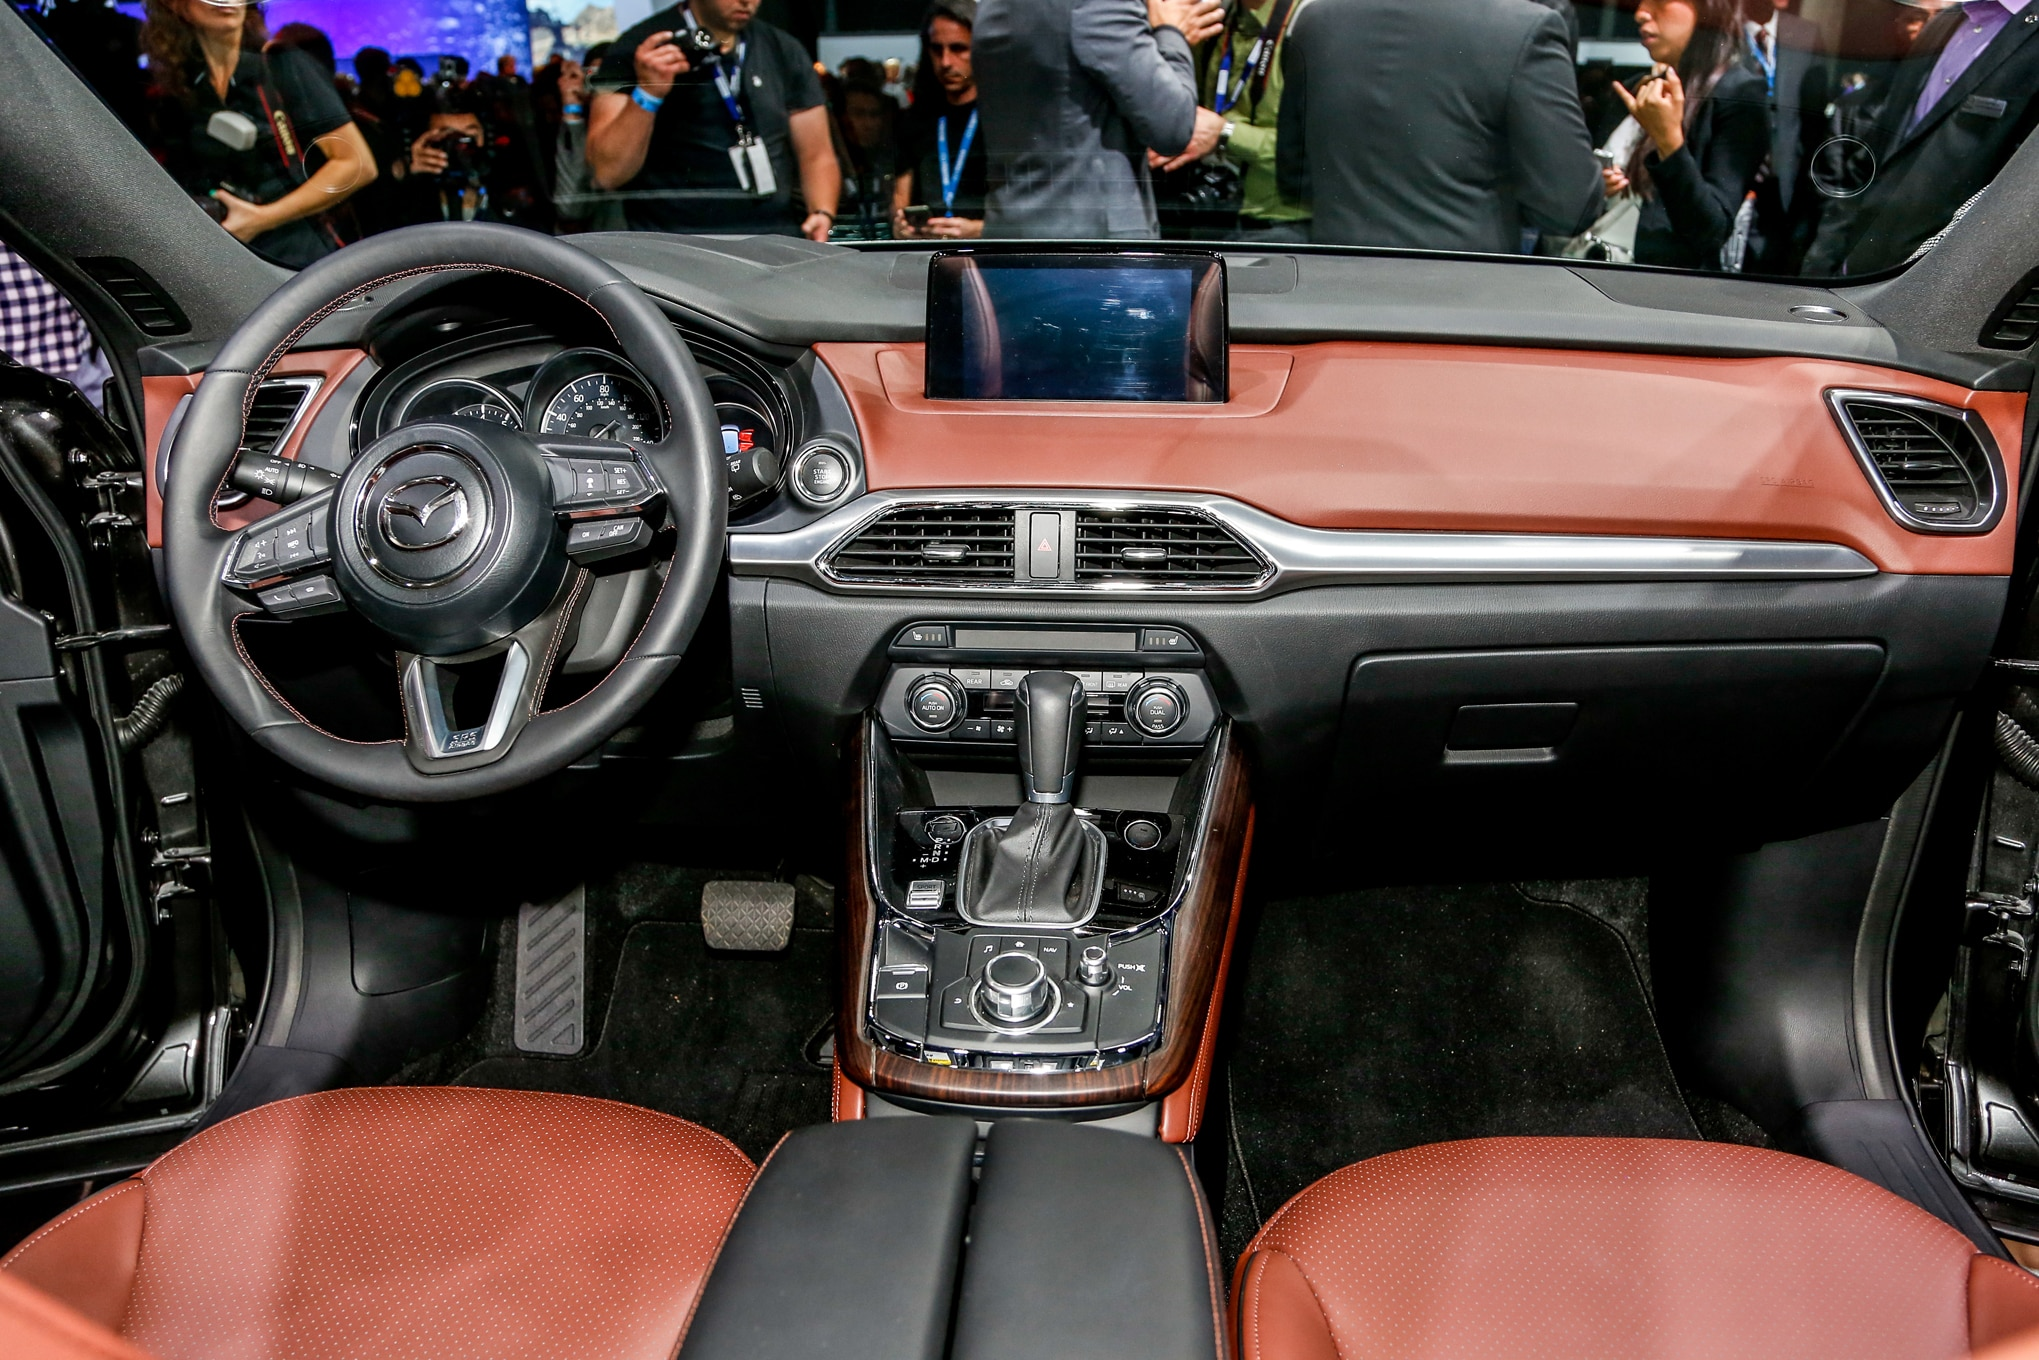 2016 Mazda CX-9 Hits L.A. Show with Fresh Design, New Turbo Engine